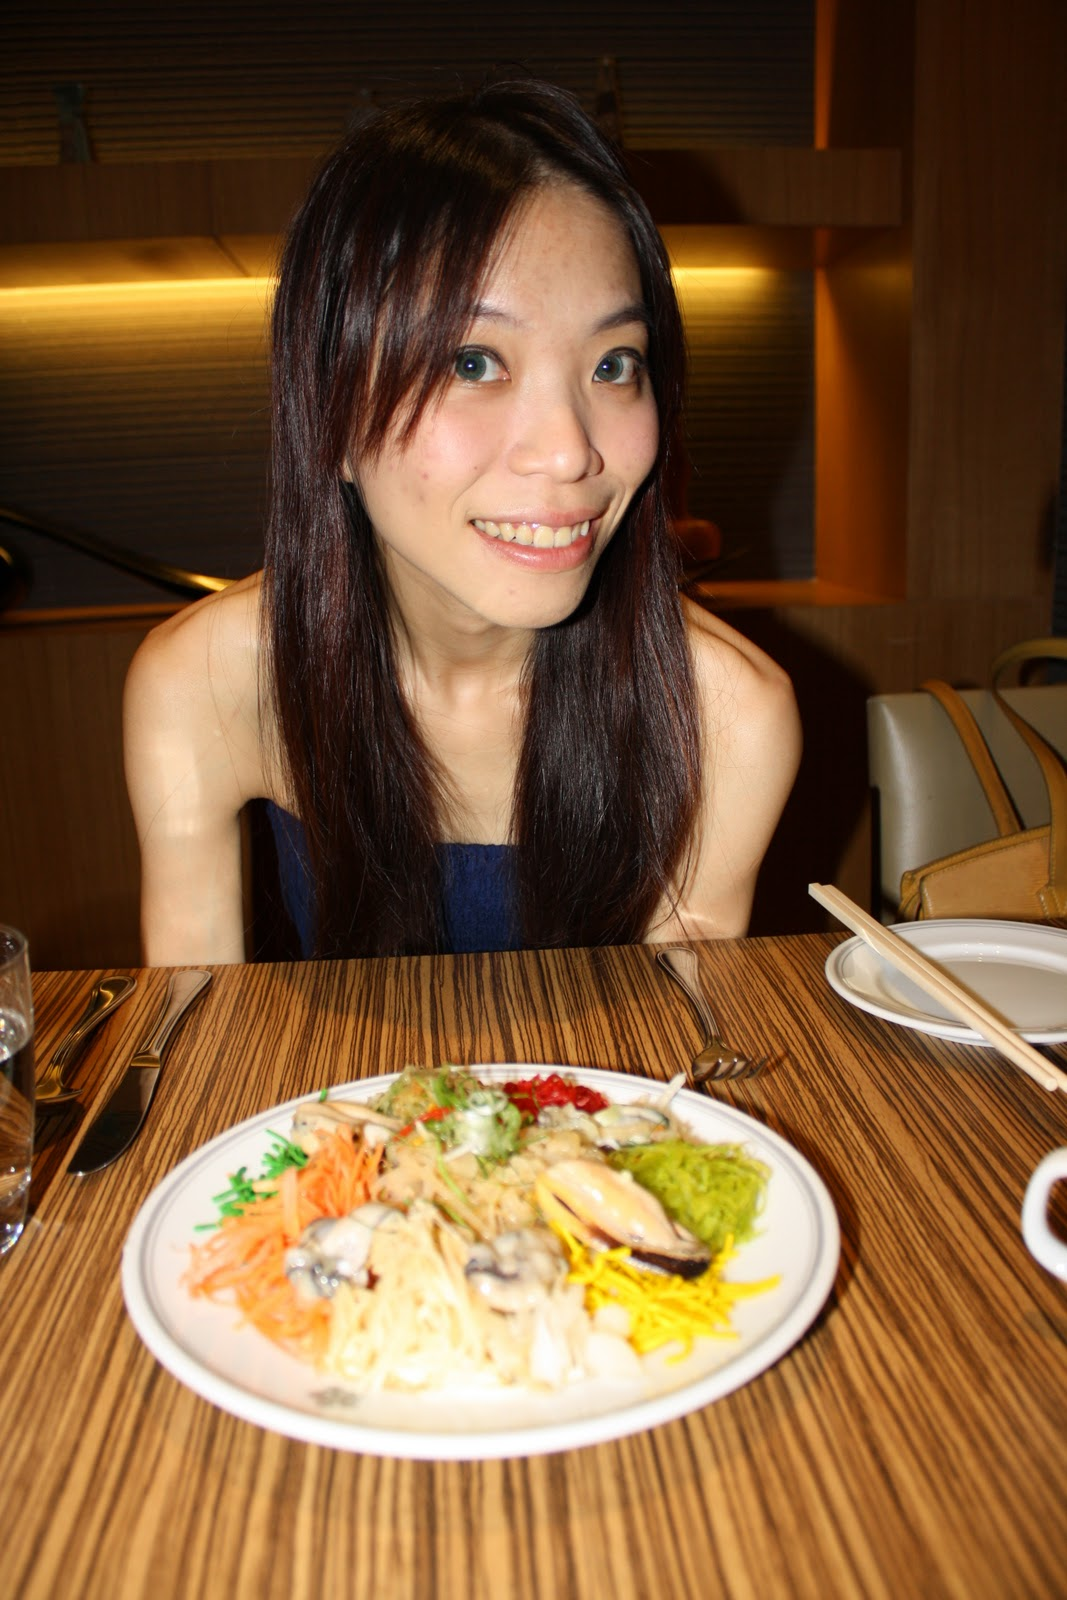 didn't have any of the fried rice, but did pick at the bet365 netz char siew ...